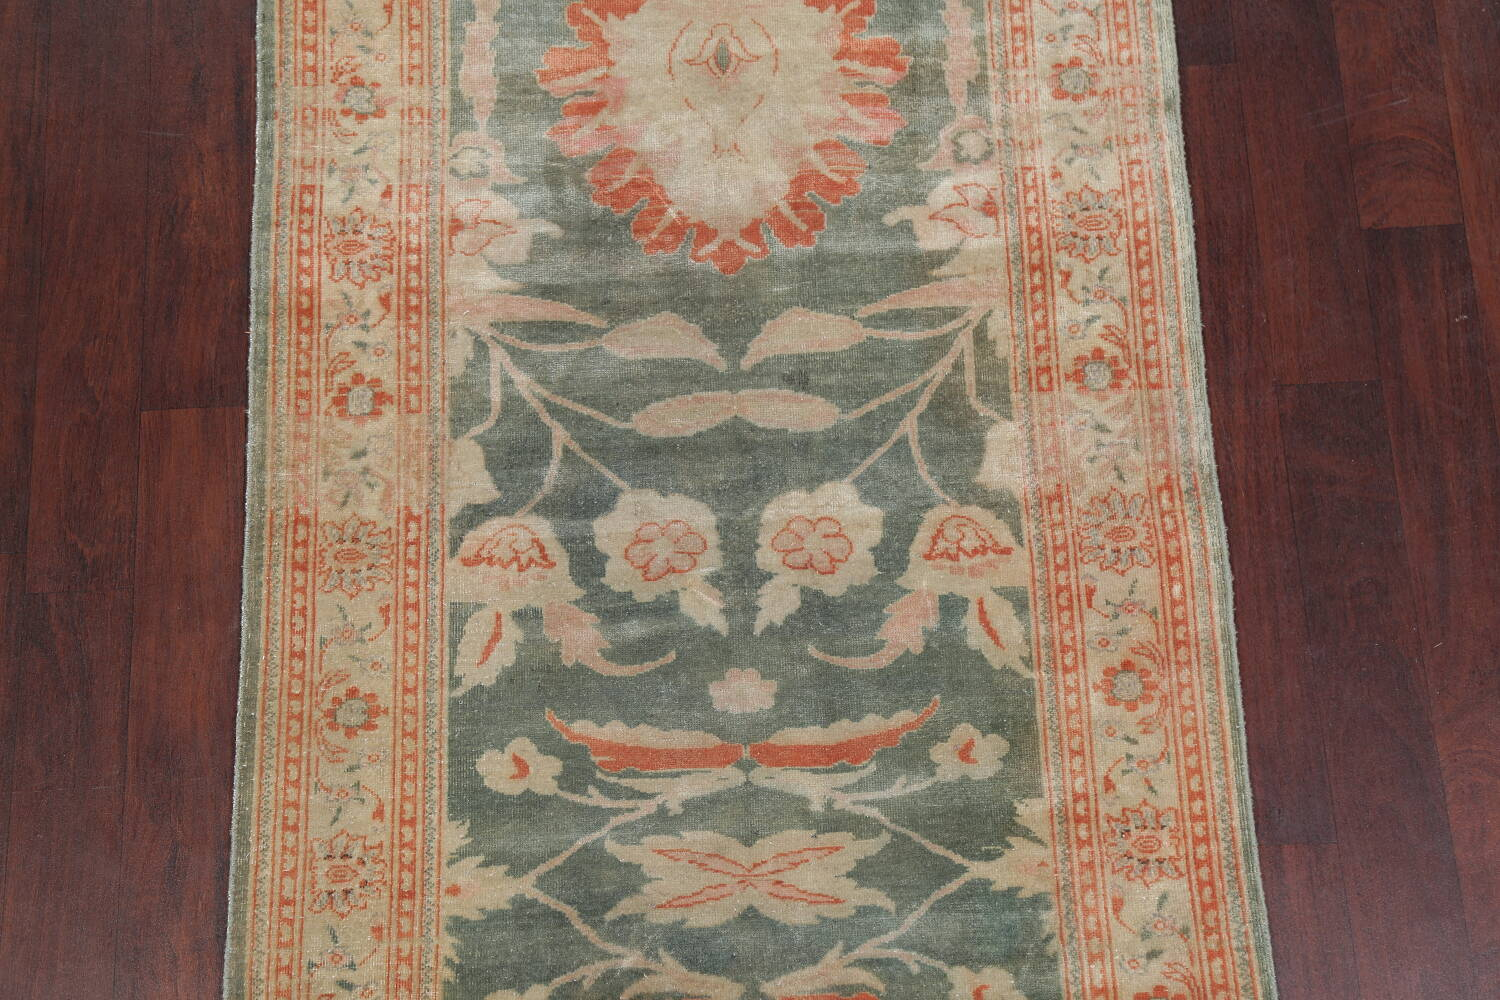 Floral Green Oushak Egyptian Area Rug 4x6 image 3